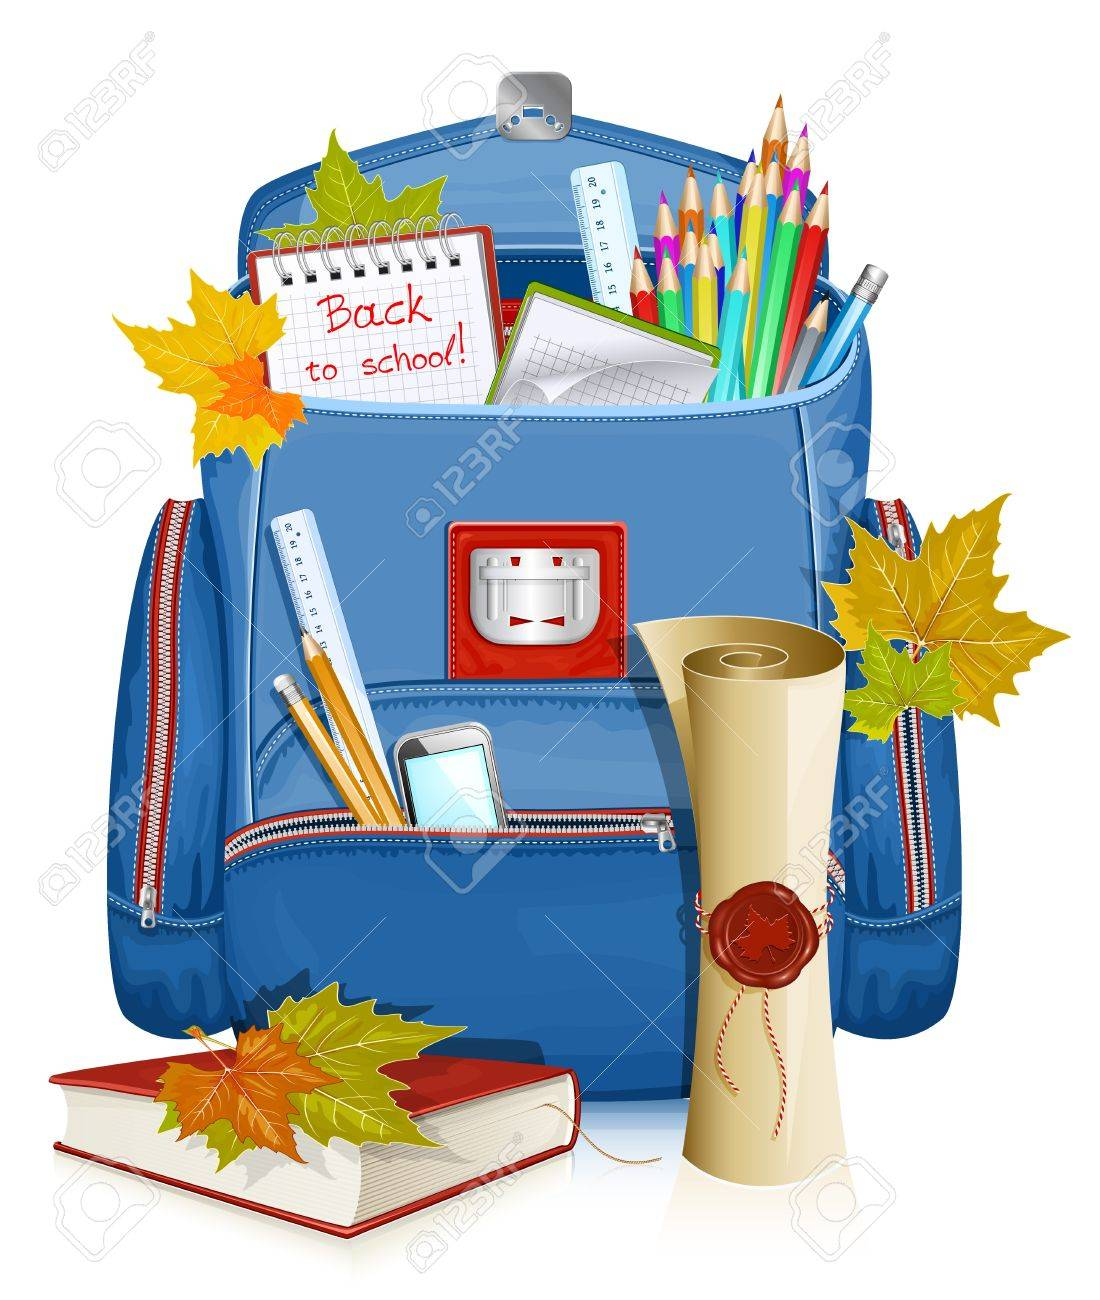 Back to school! Vector illustration of school bag with education objects Stock Vector - 15515561